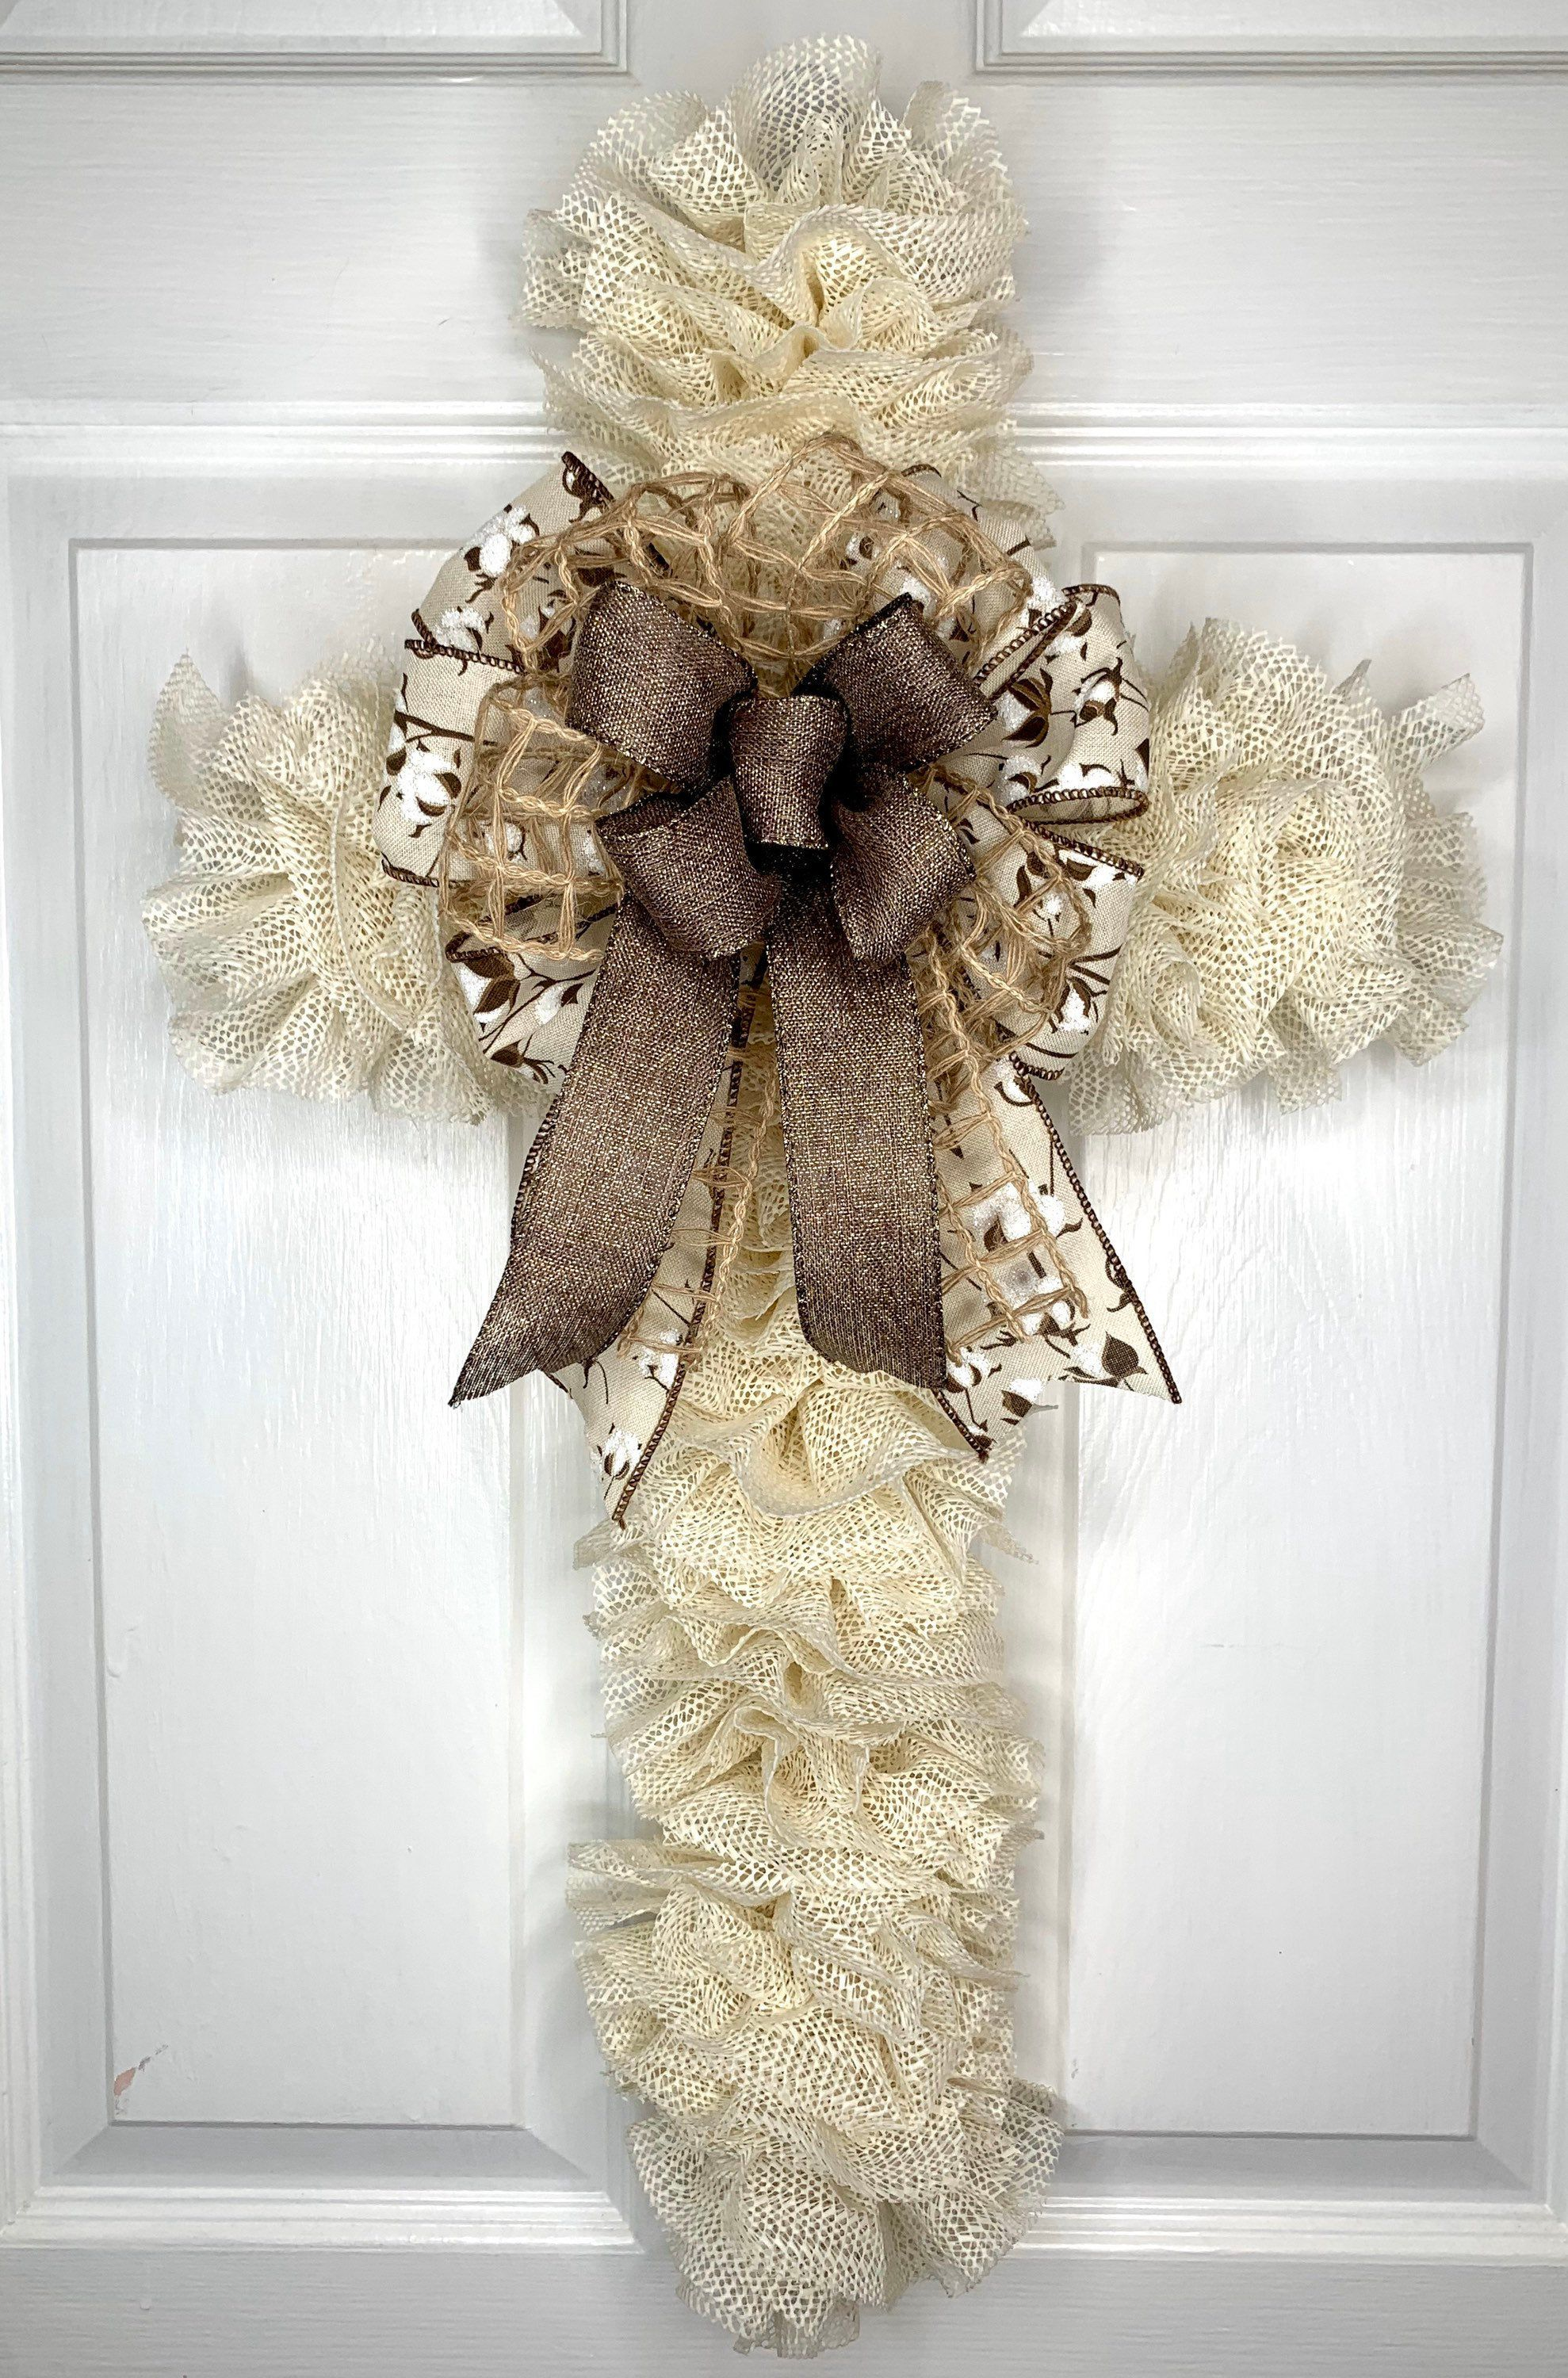 Easter Cross Wreath Easter Wreath Cross Wreath Rustic Cross Wreath Cross Door Hanger Memorial Wreath In 2020 Cross Wreath Rustic Cross Wreath Cross Wreath Diy